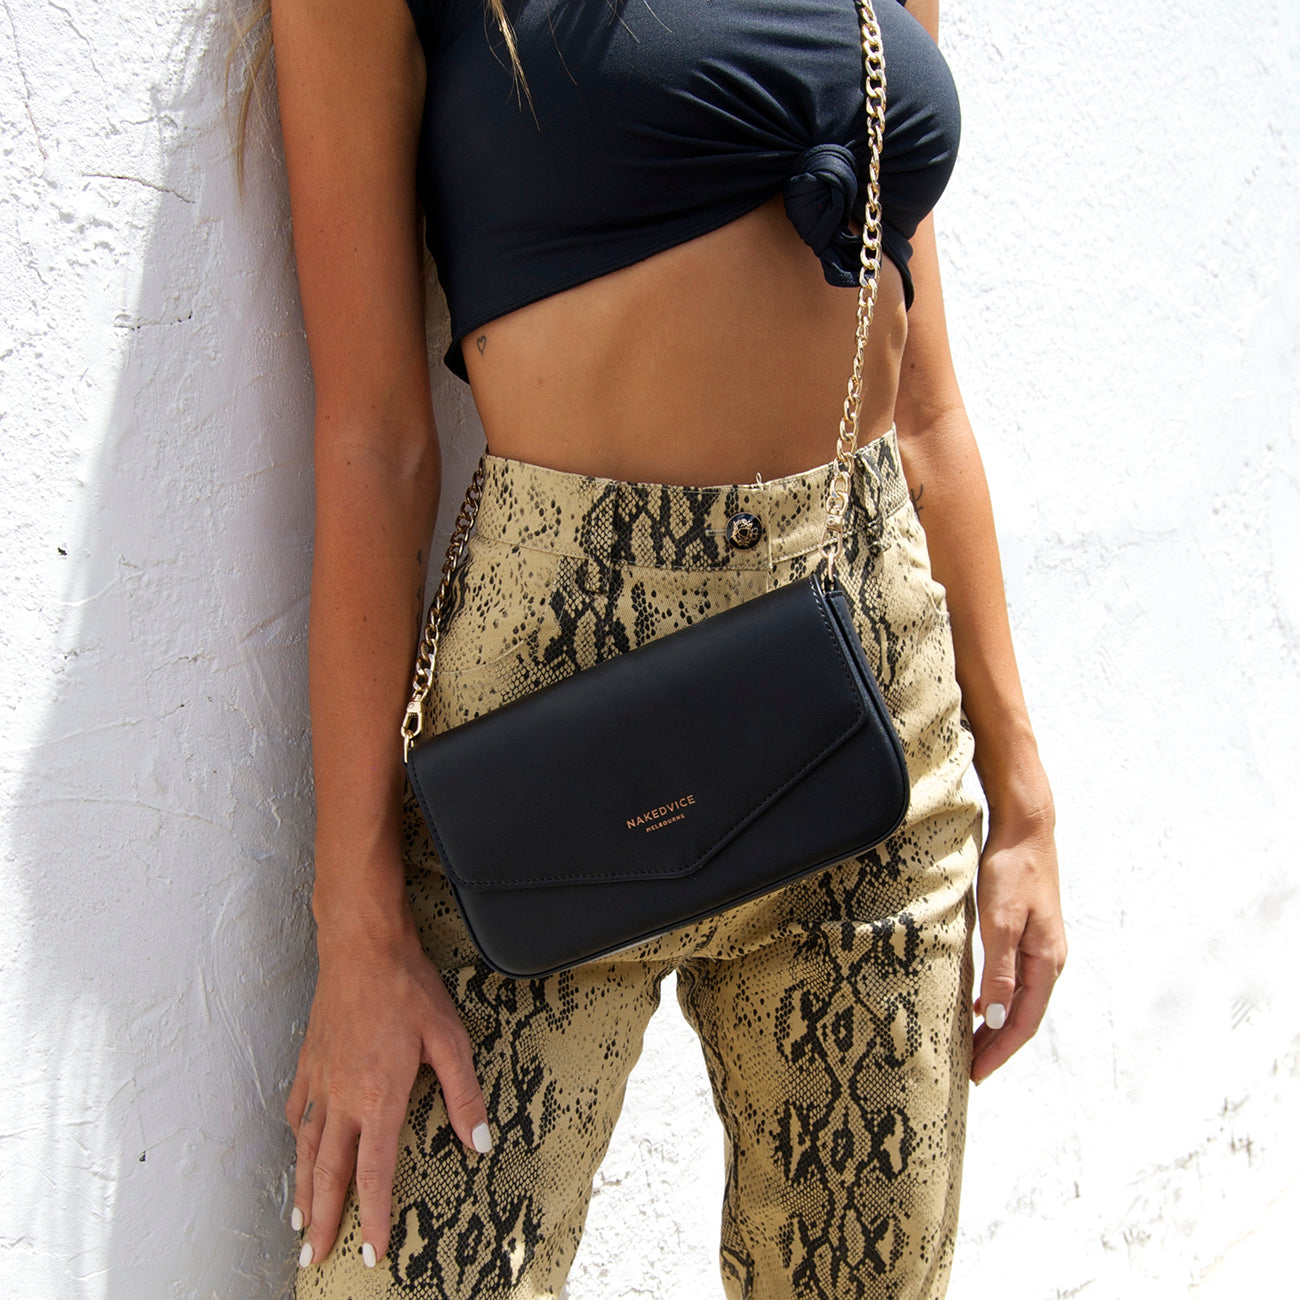 THE GISELLE GOLD SIDE BAG